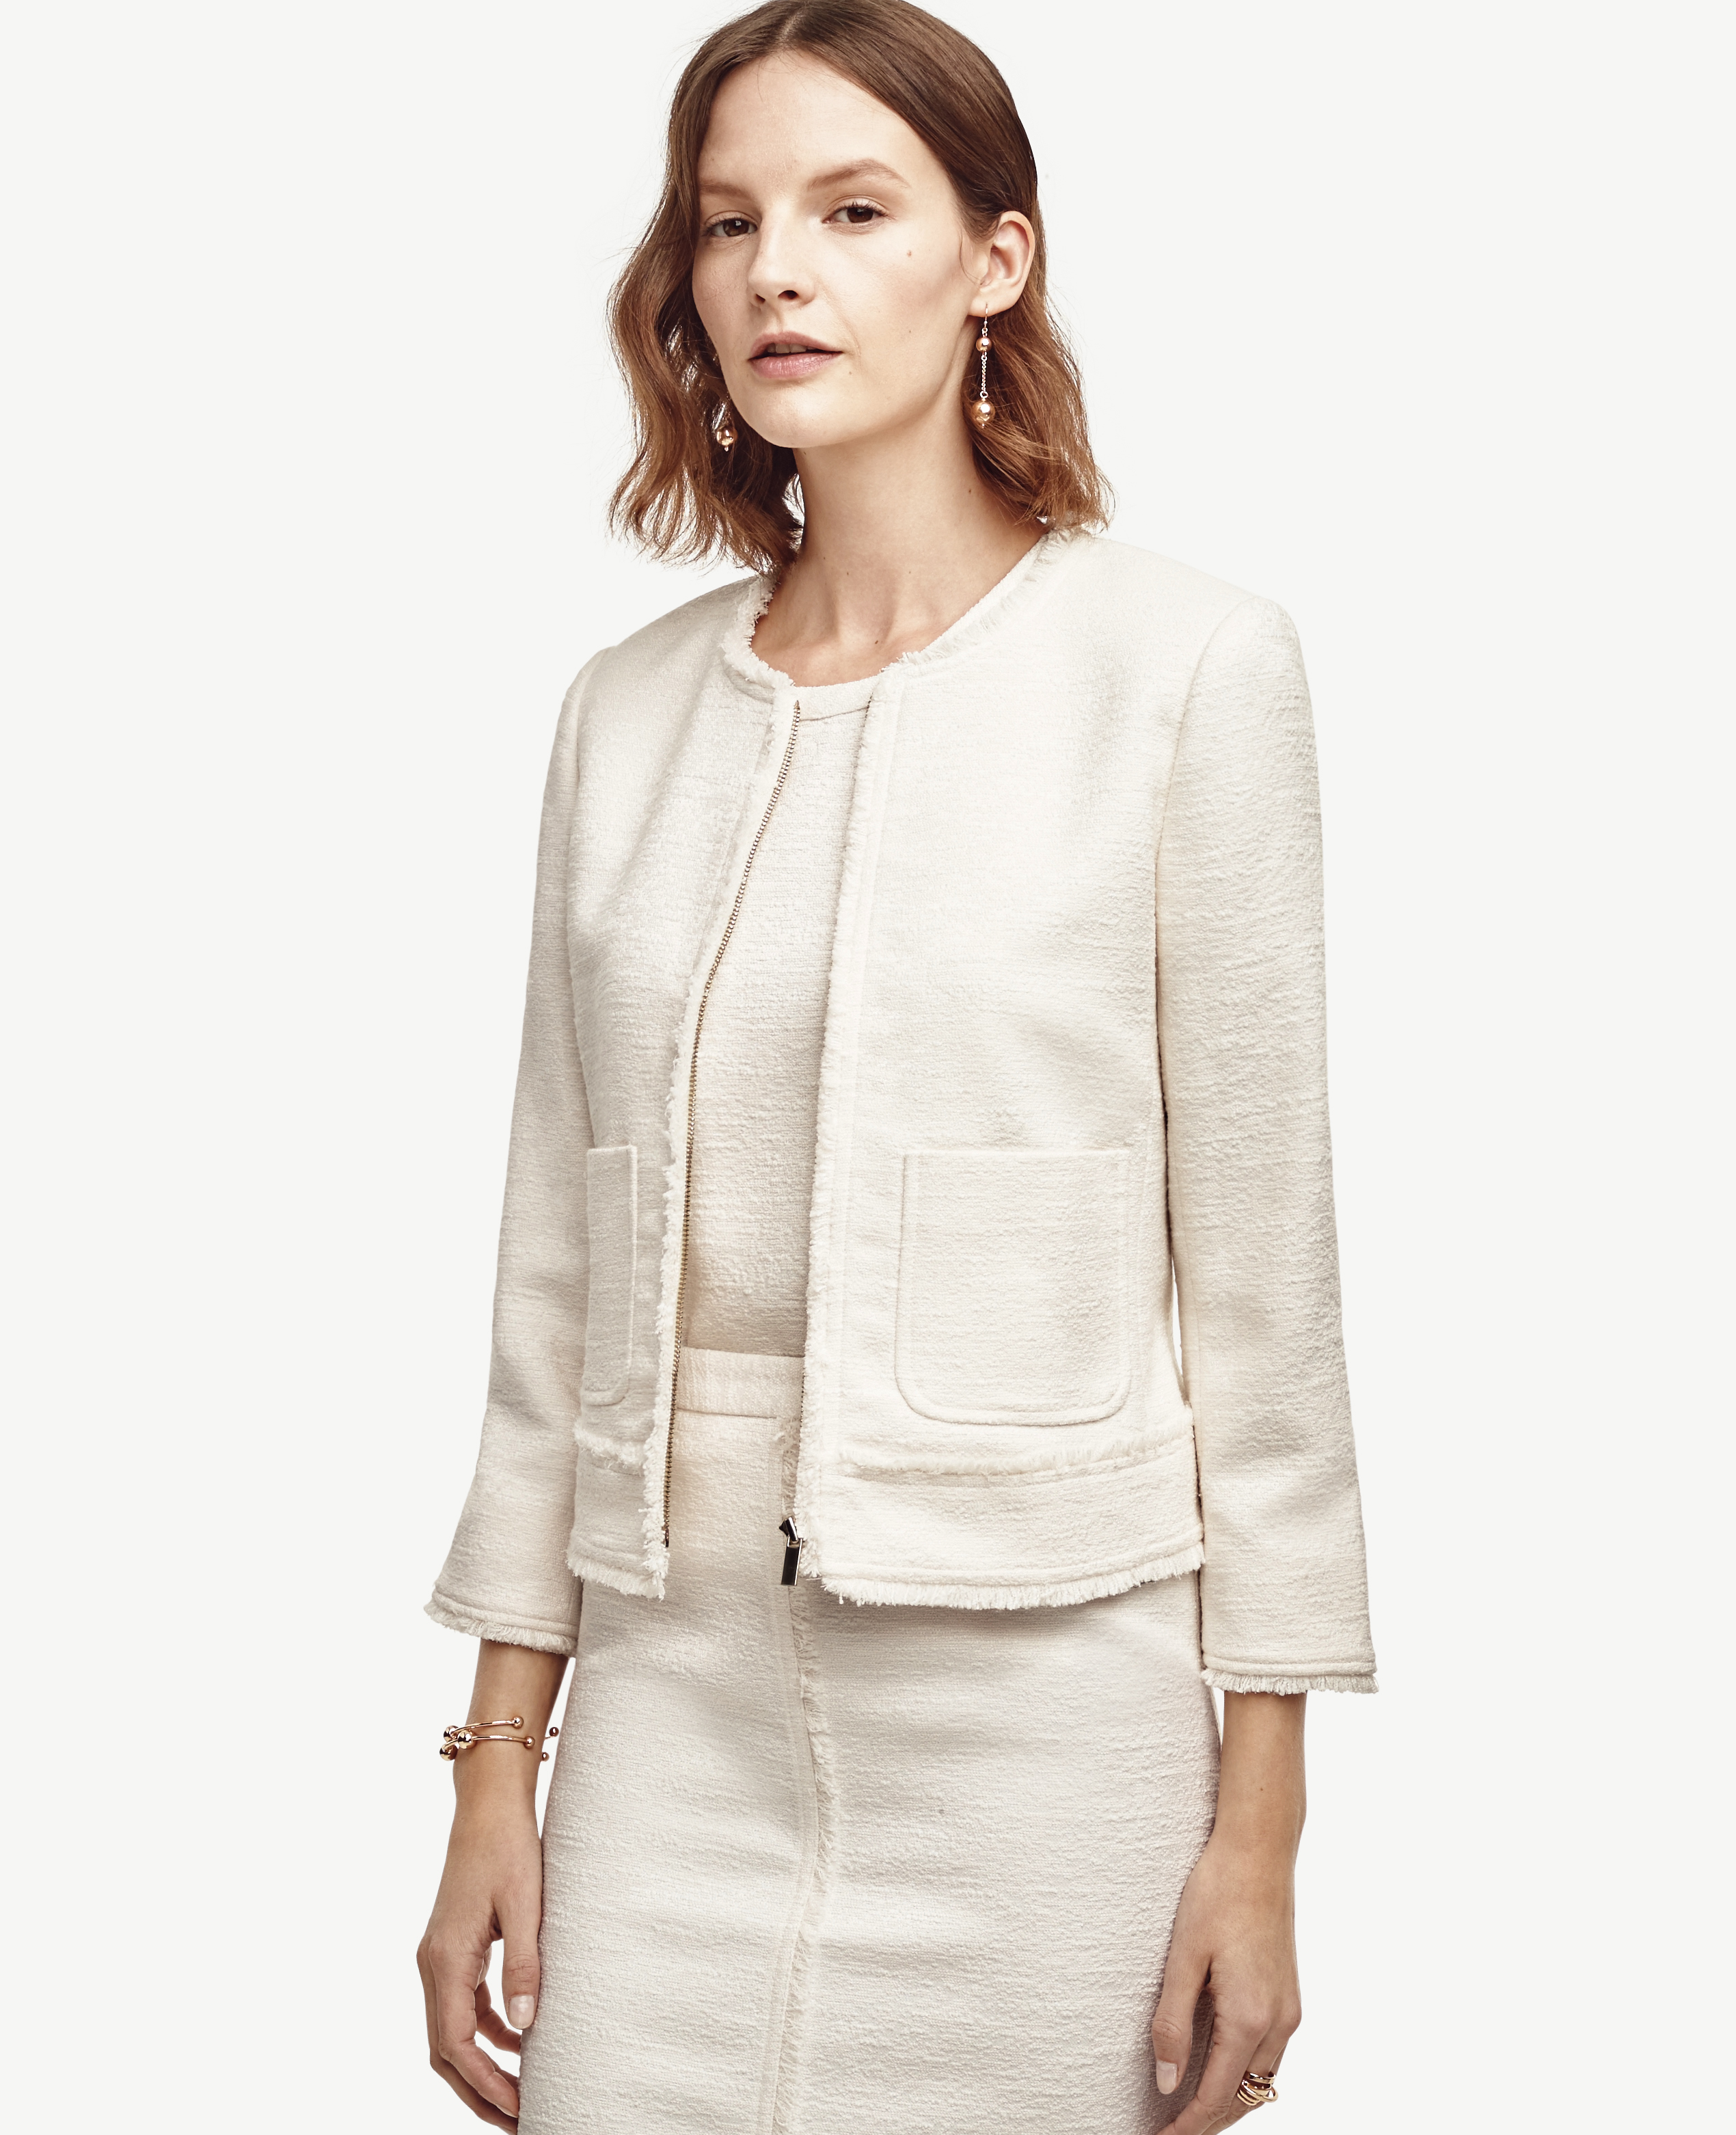 Ann Taylor Petite Fringed Tweed Jacket In White Lyst